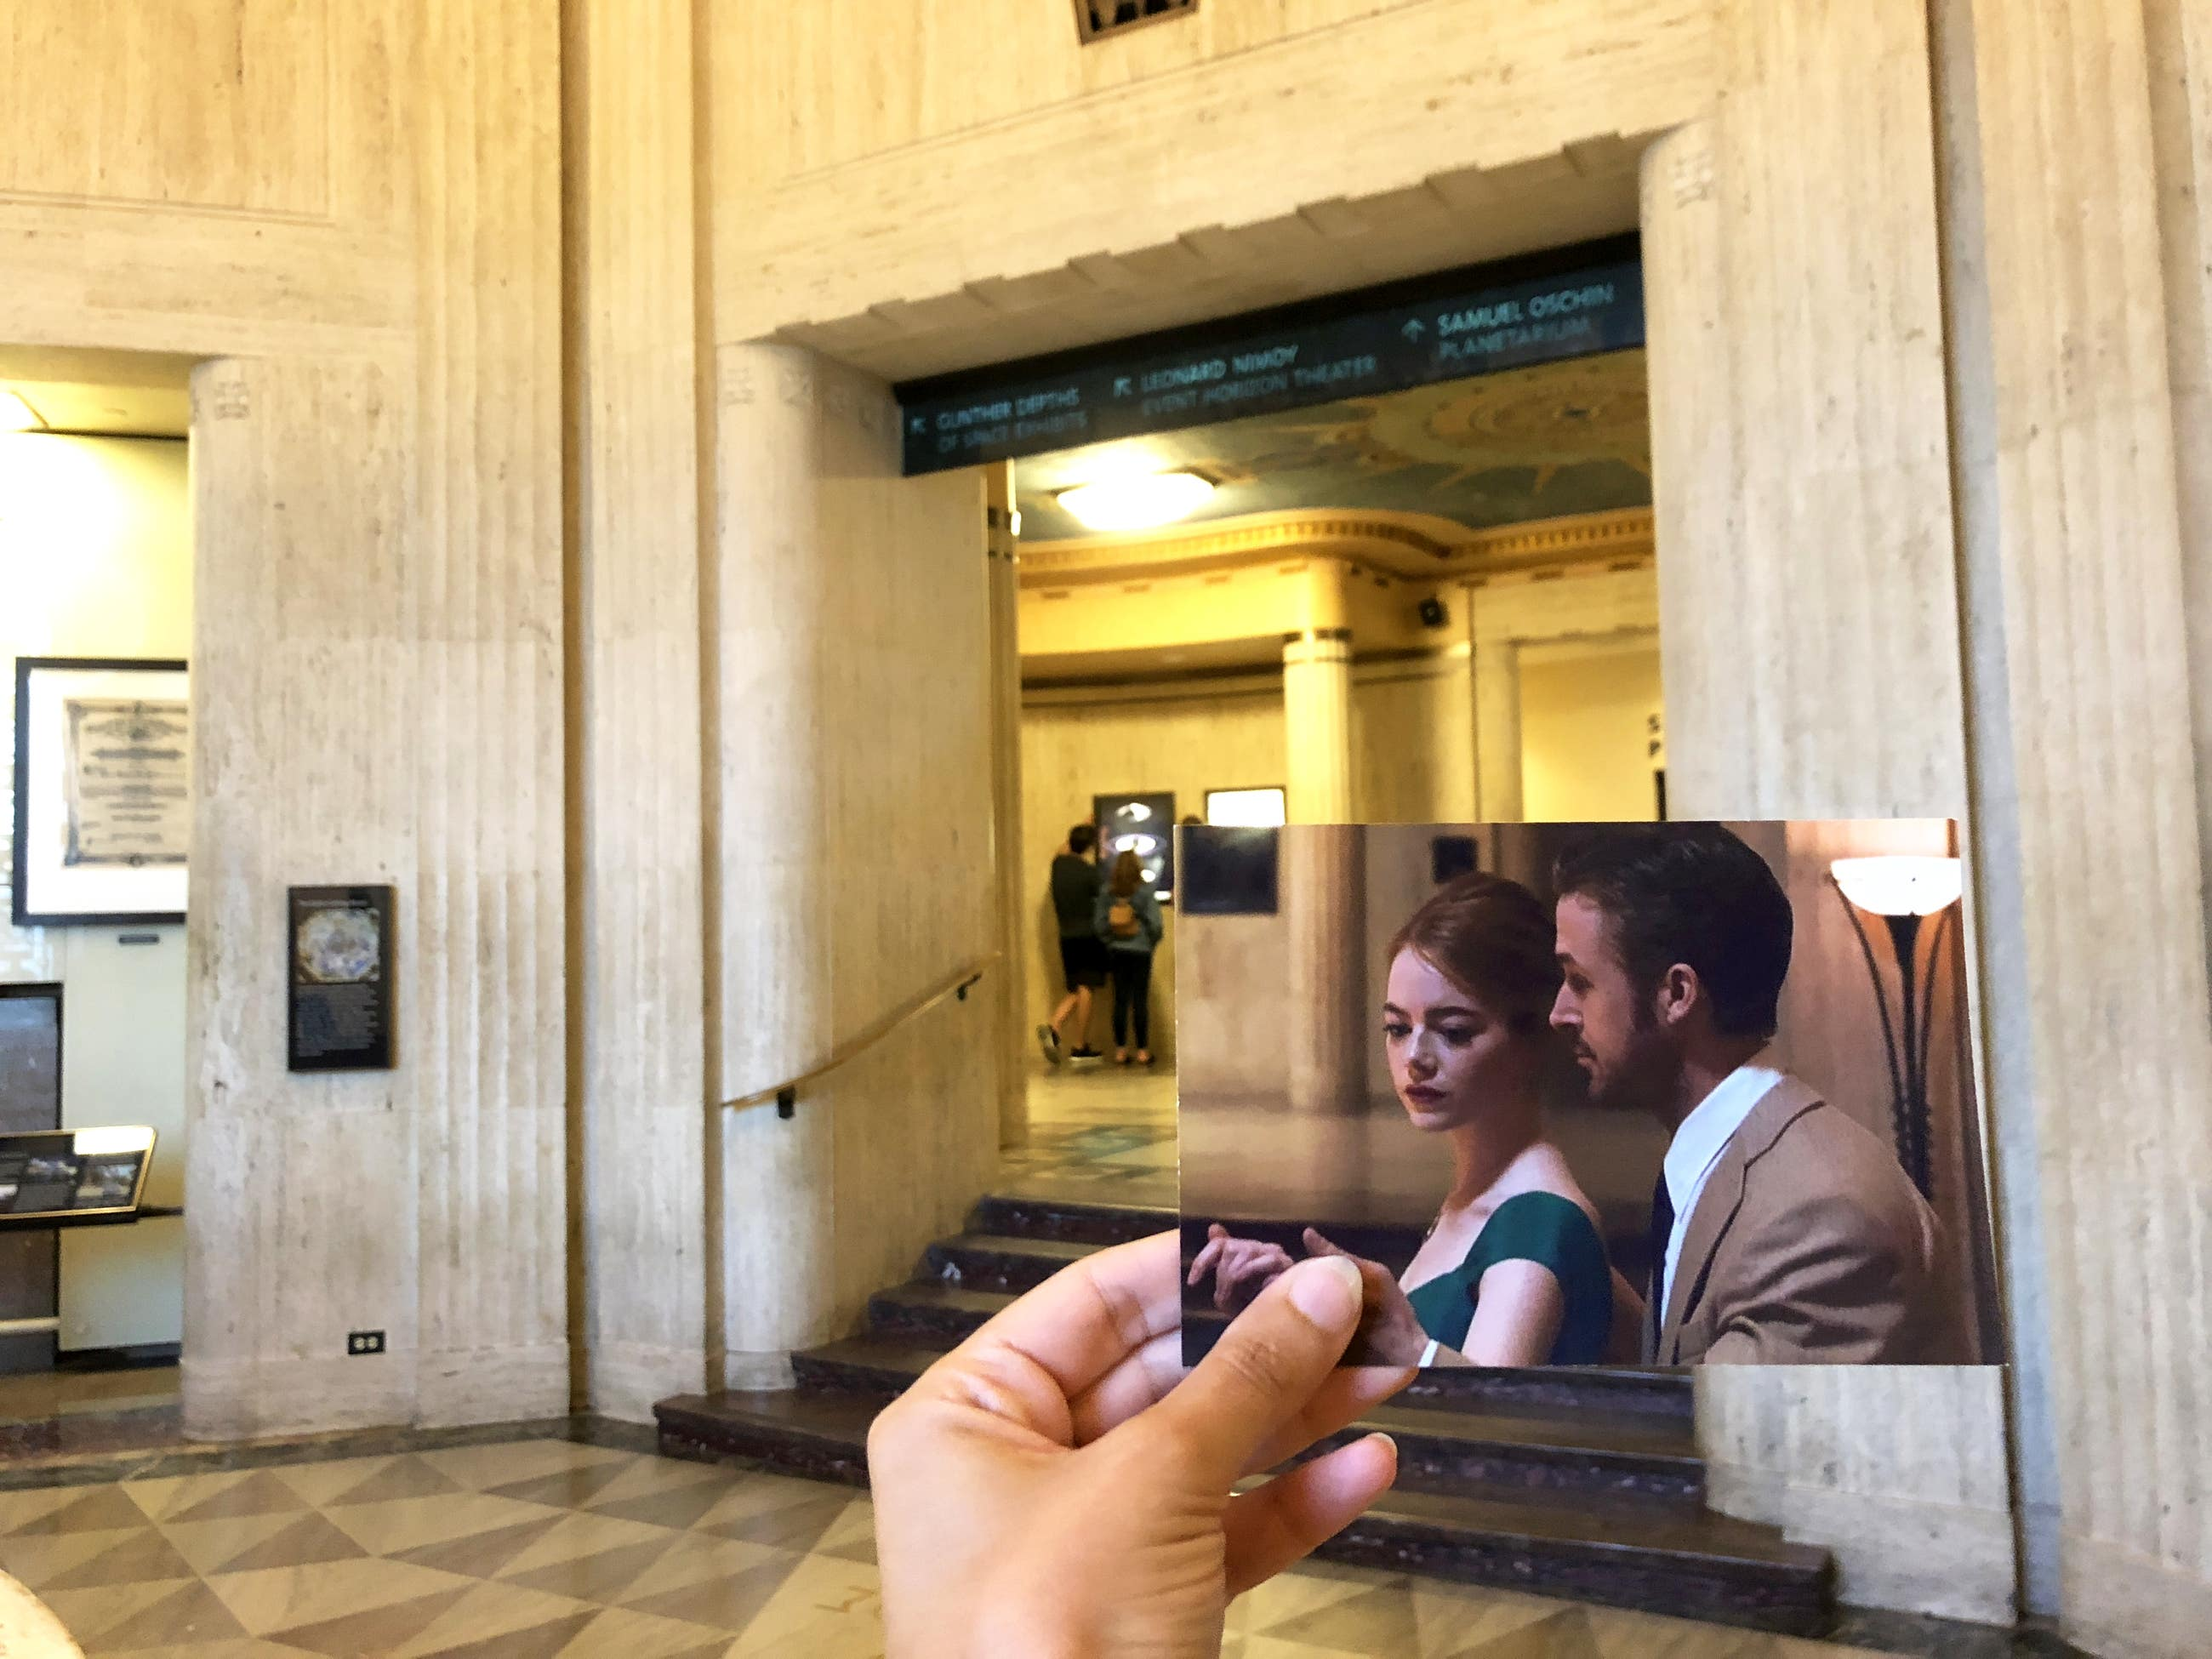 Scene fromLa La Land at the Griffith Observatory